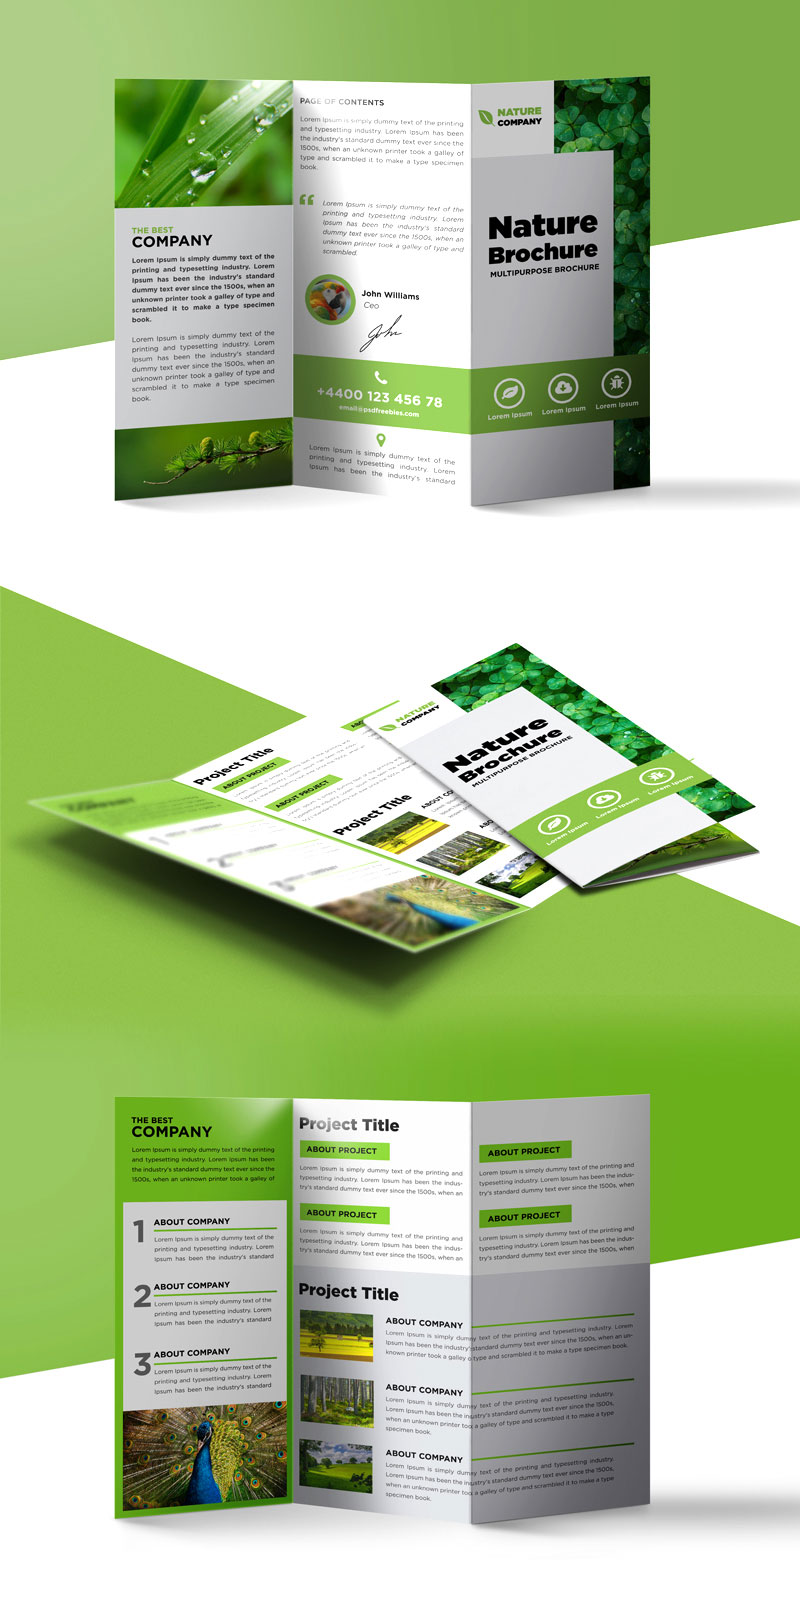 Nature tri fold brochure template free psd for Trifold brochure templates